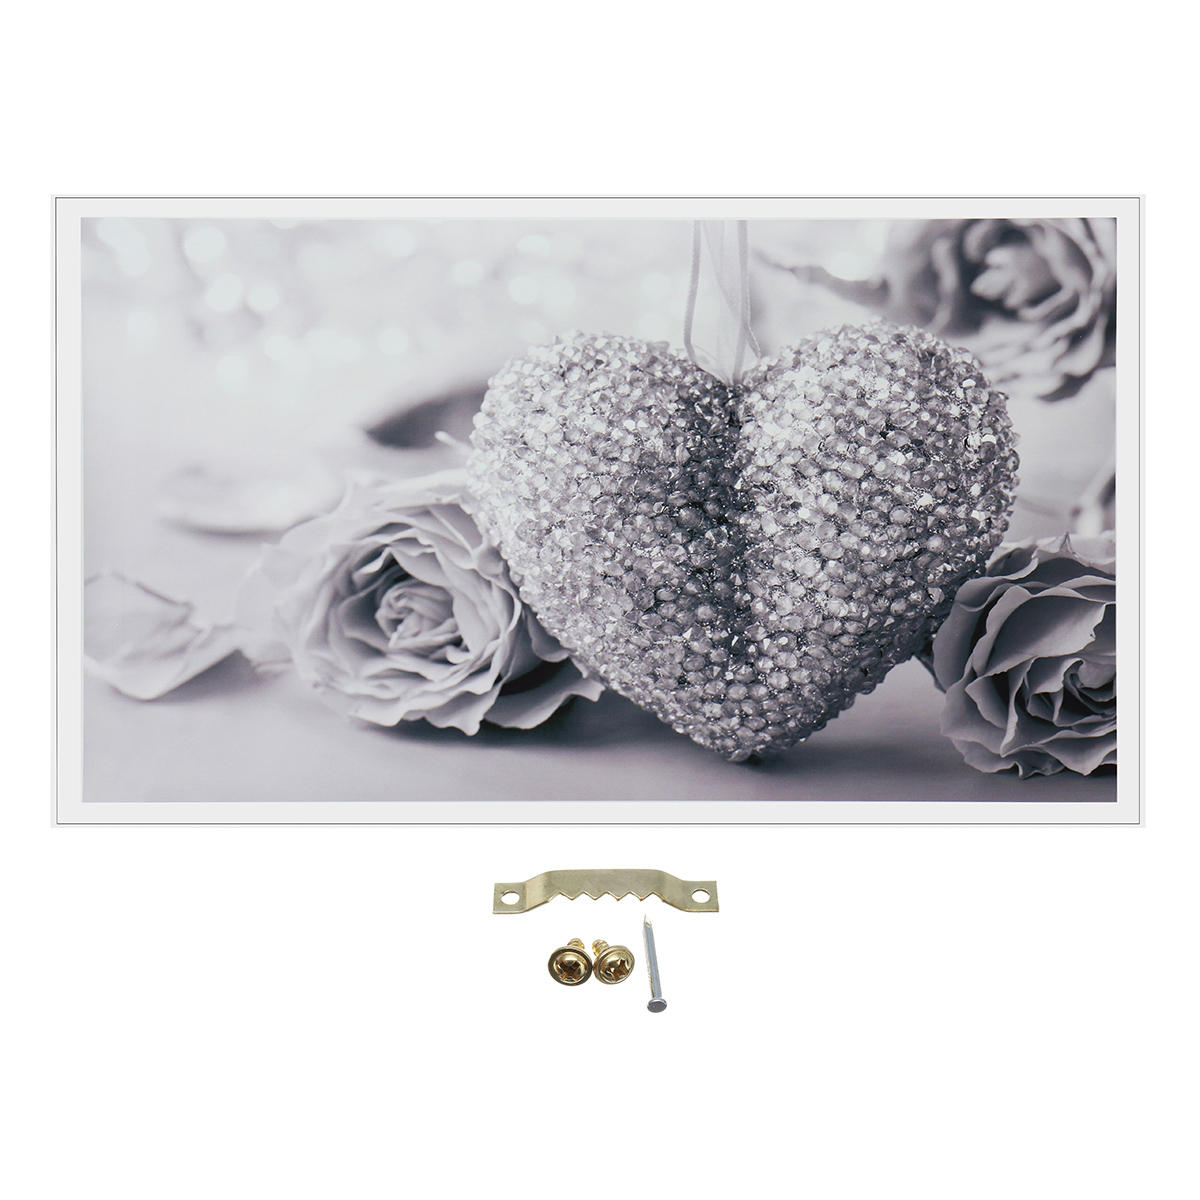 45x80cm Large Frameless Rose Black White Grey Canvas Wall Art Picture Decor